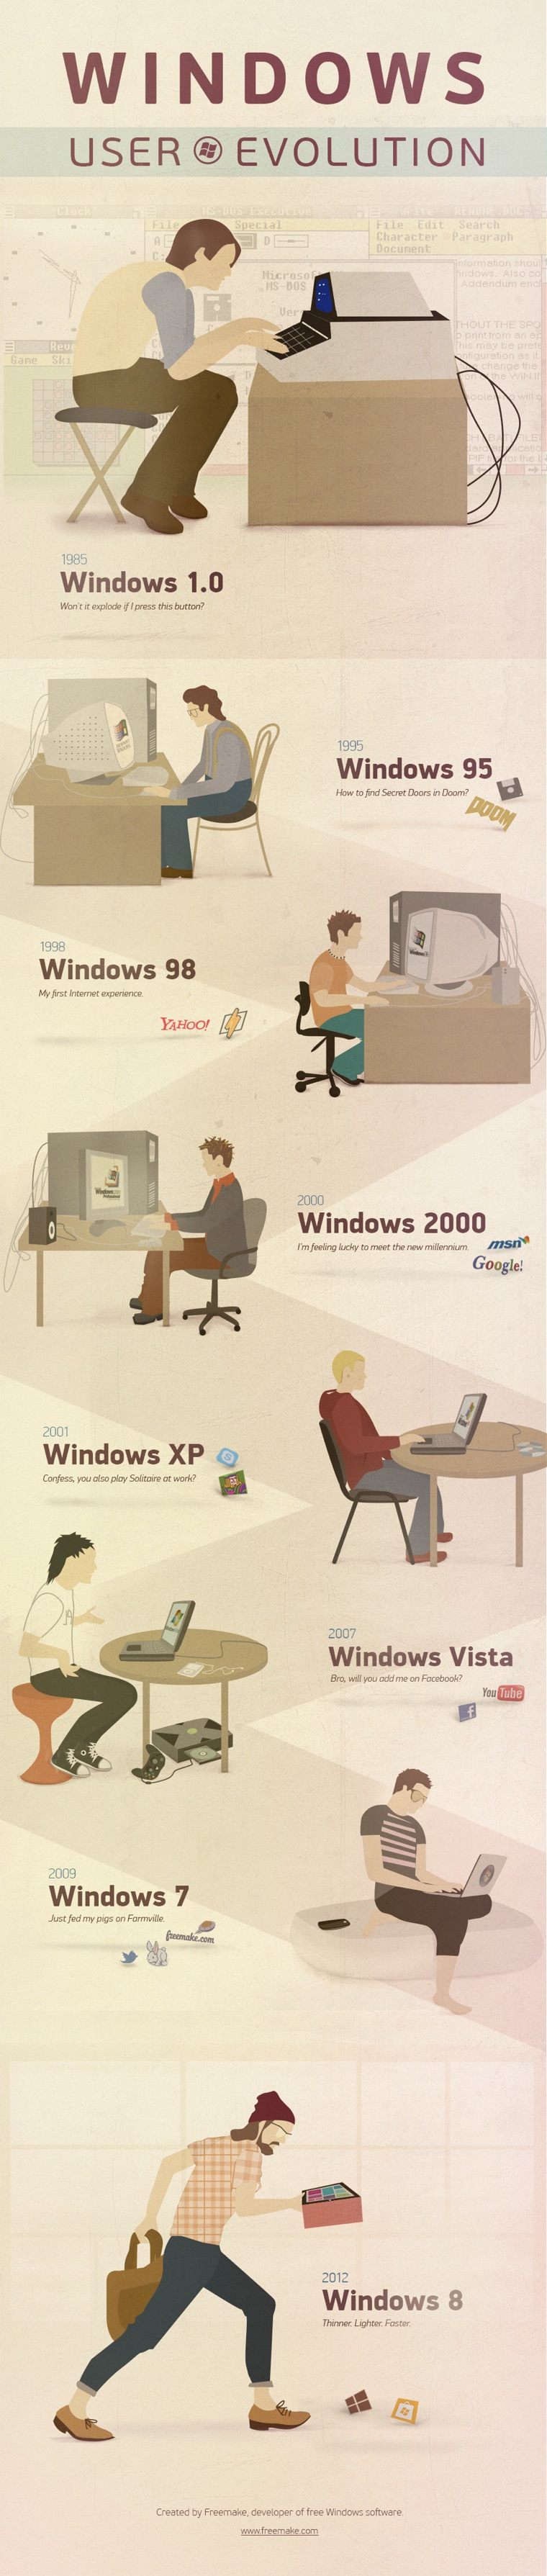 Evolution of Microsoft Windows